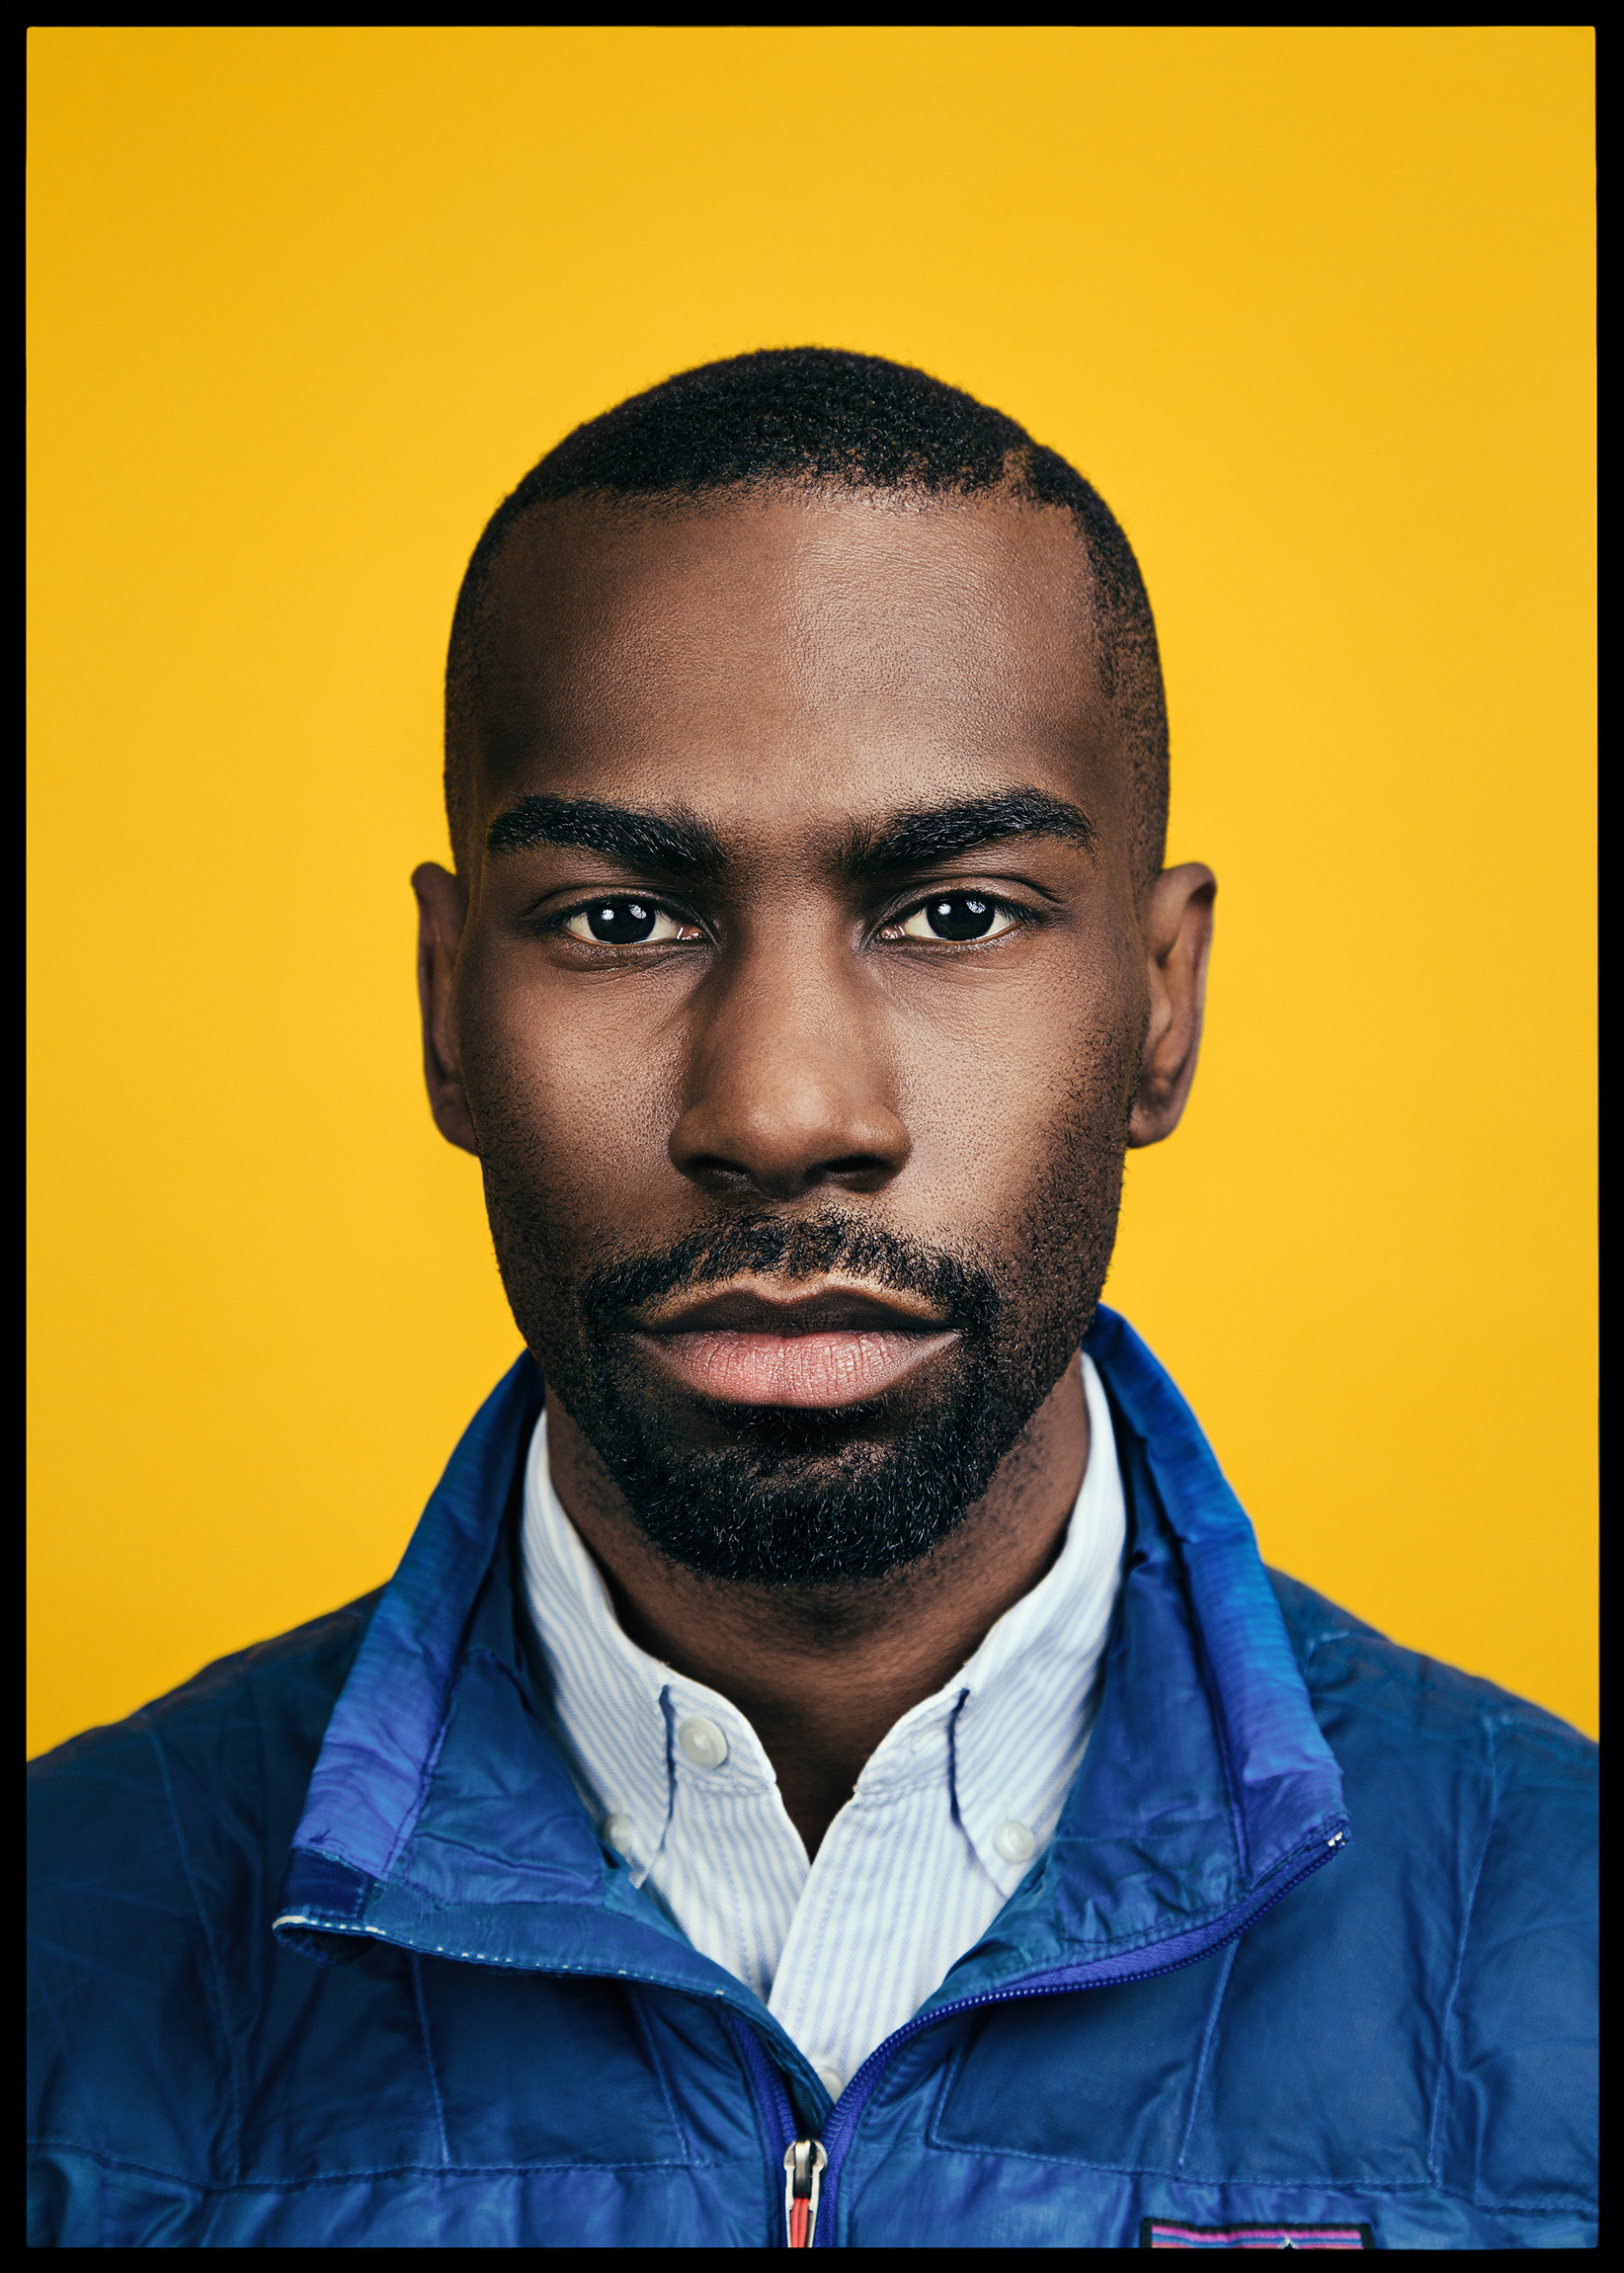 deray mckesson, deray pod save the people, deray activist, deray black lives matter, black lives matter, pod save the people, quinn russell brown